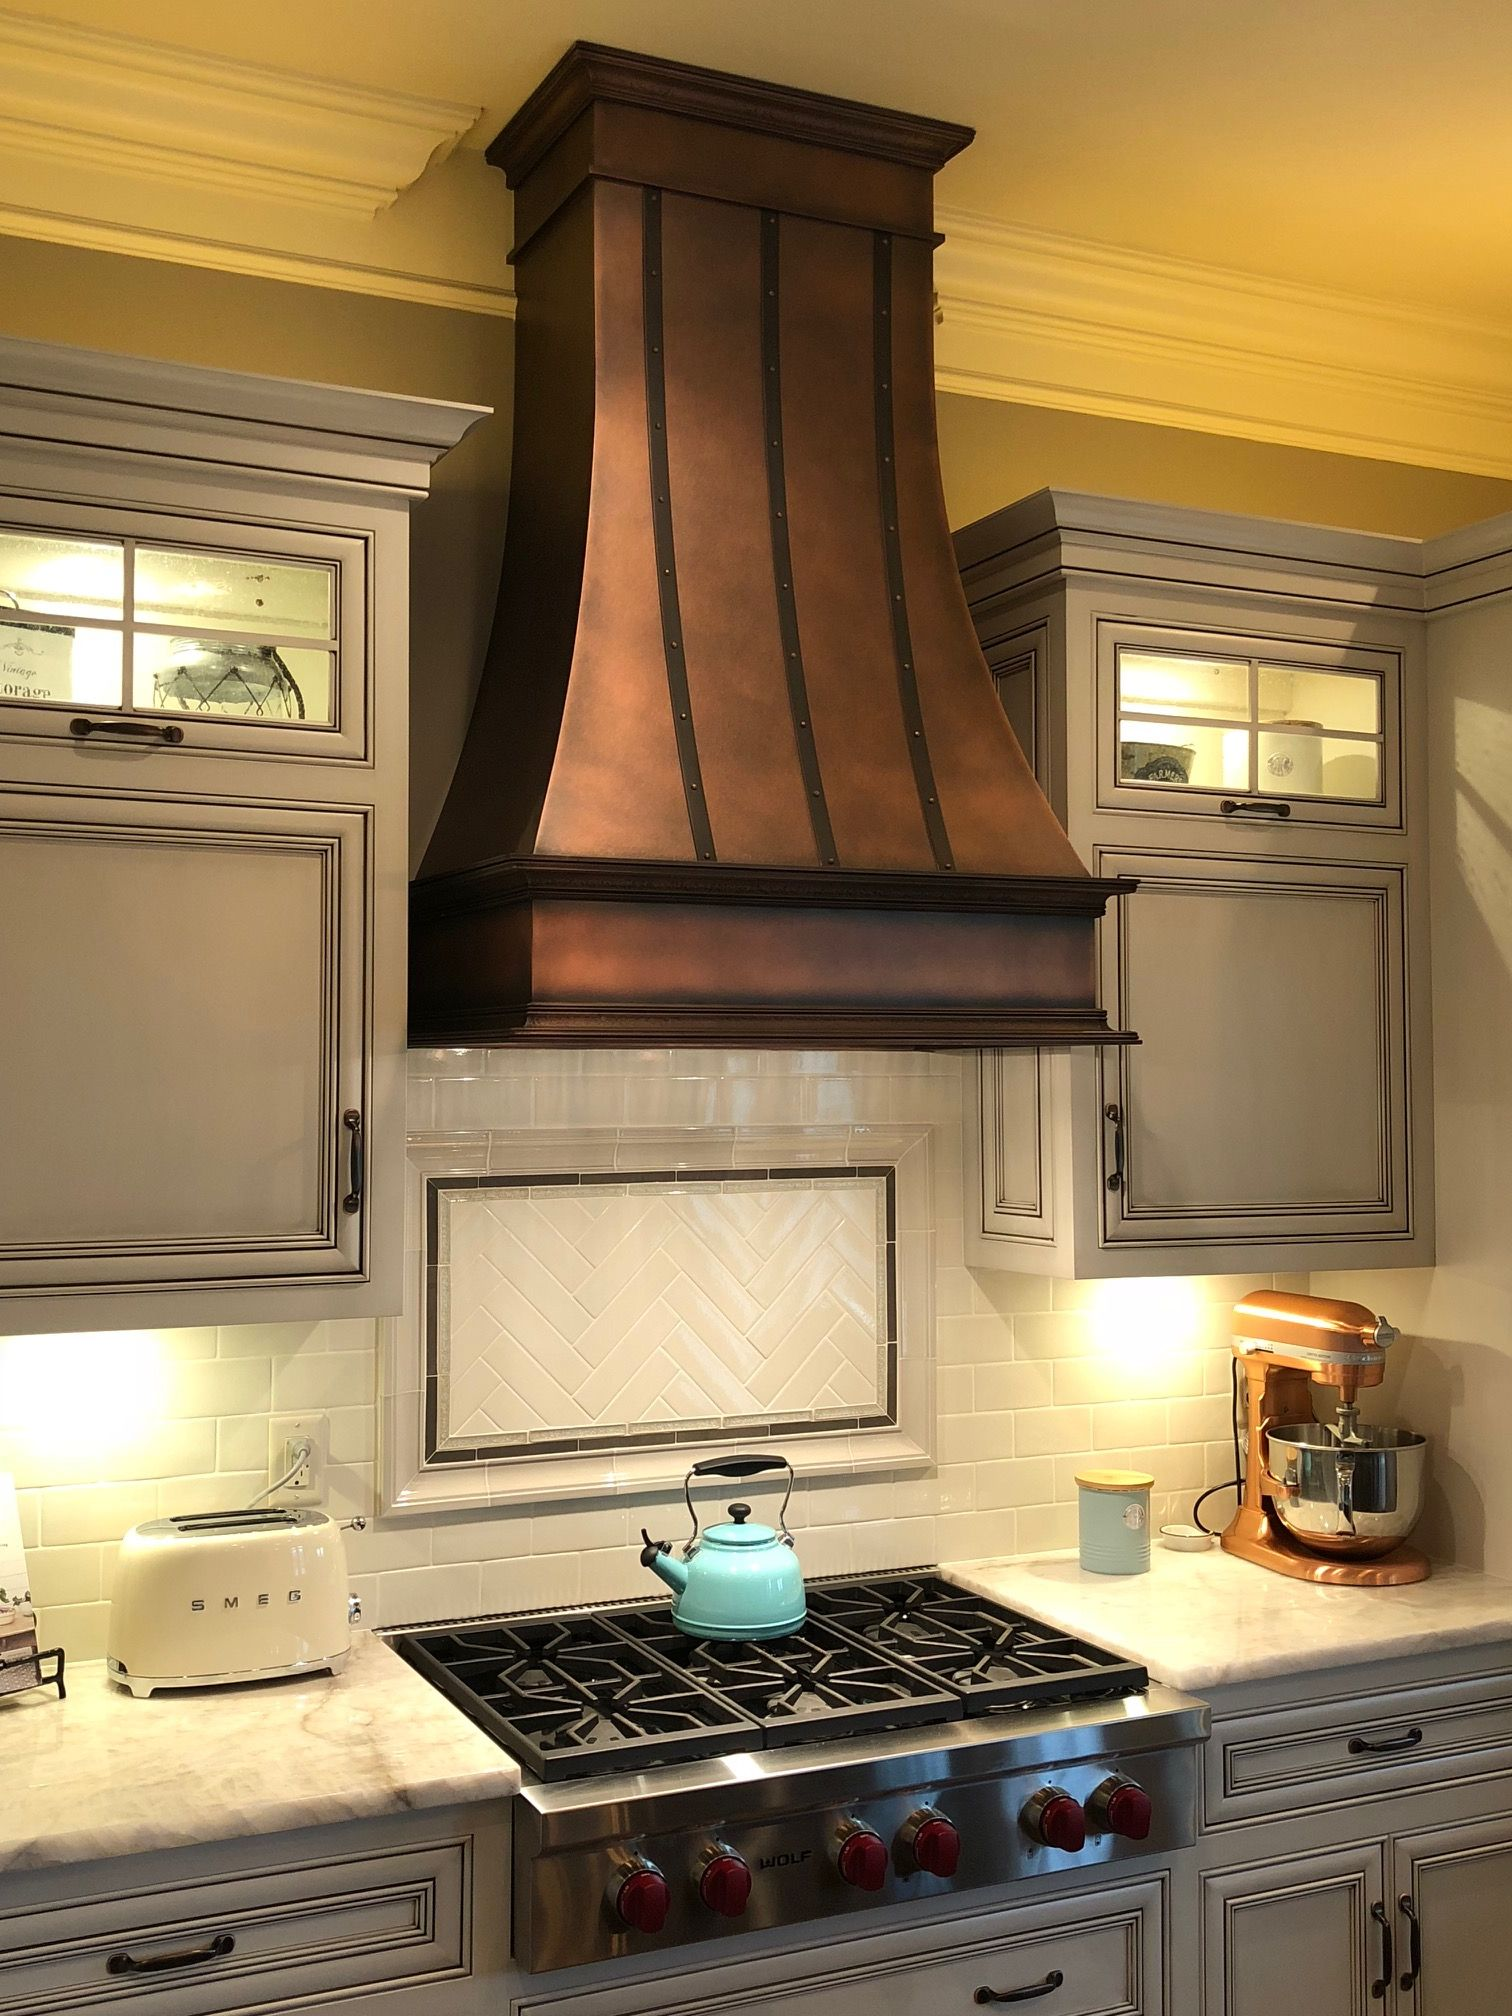 Kitchen Vent (With images) | Kitchen vent, Kitchen vent ...